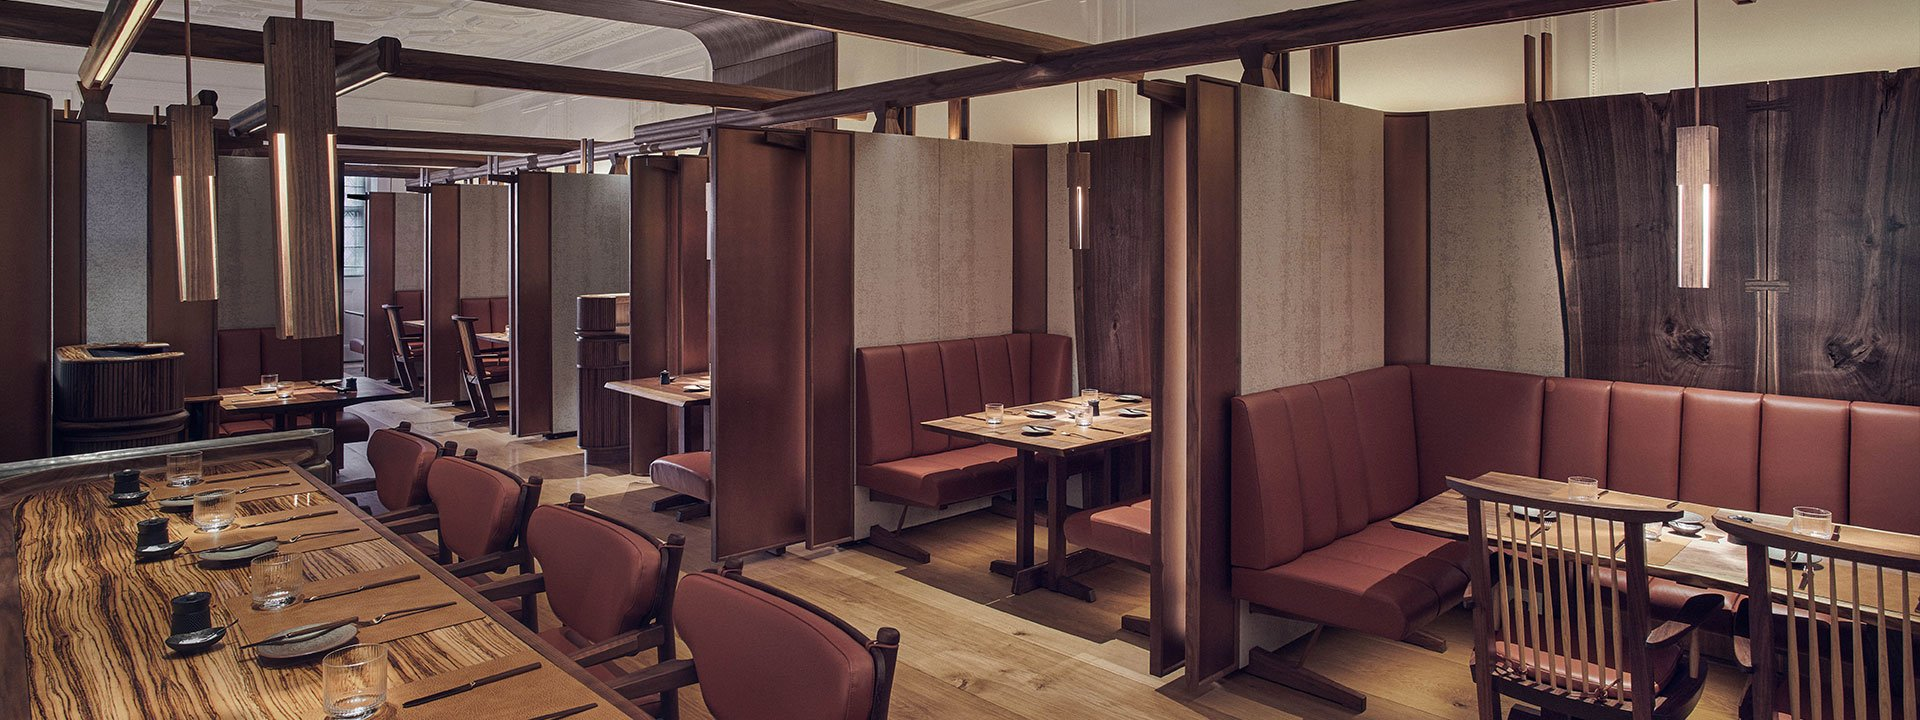 Dark wooden interiors in The Connaught Grill restaurant in Mayfair